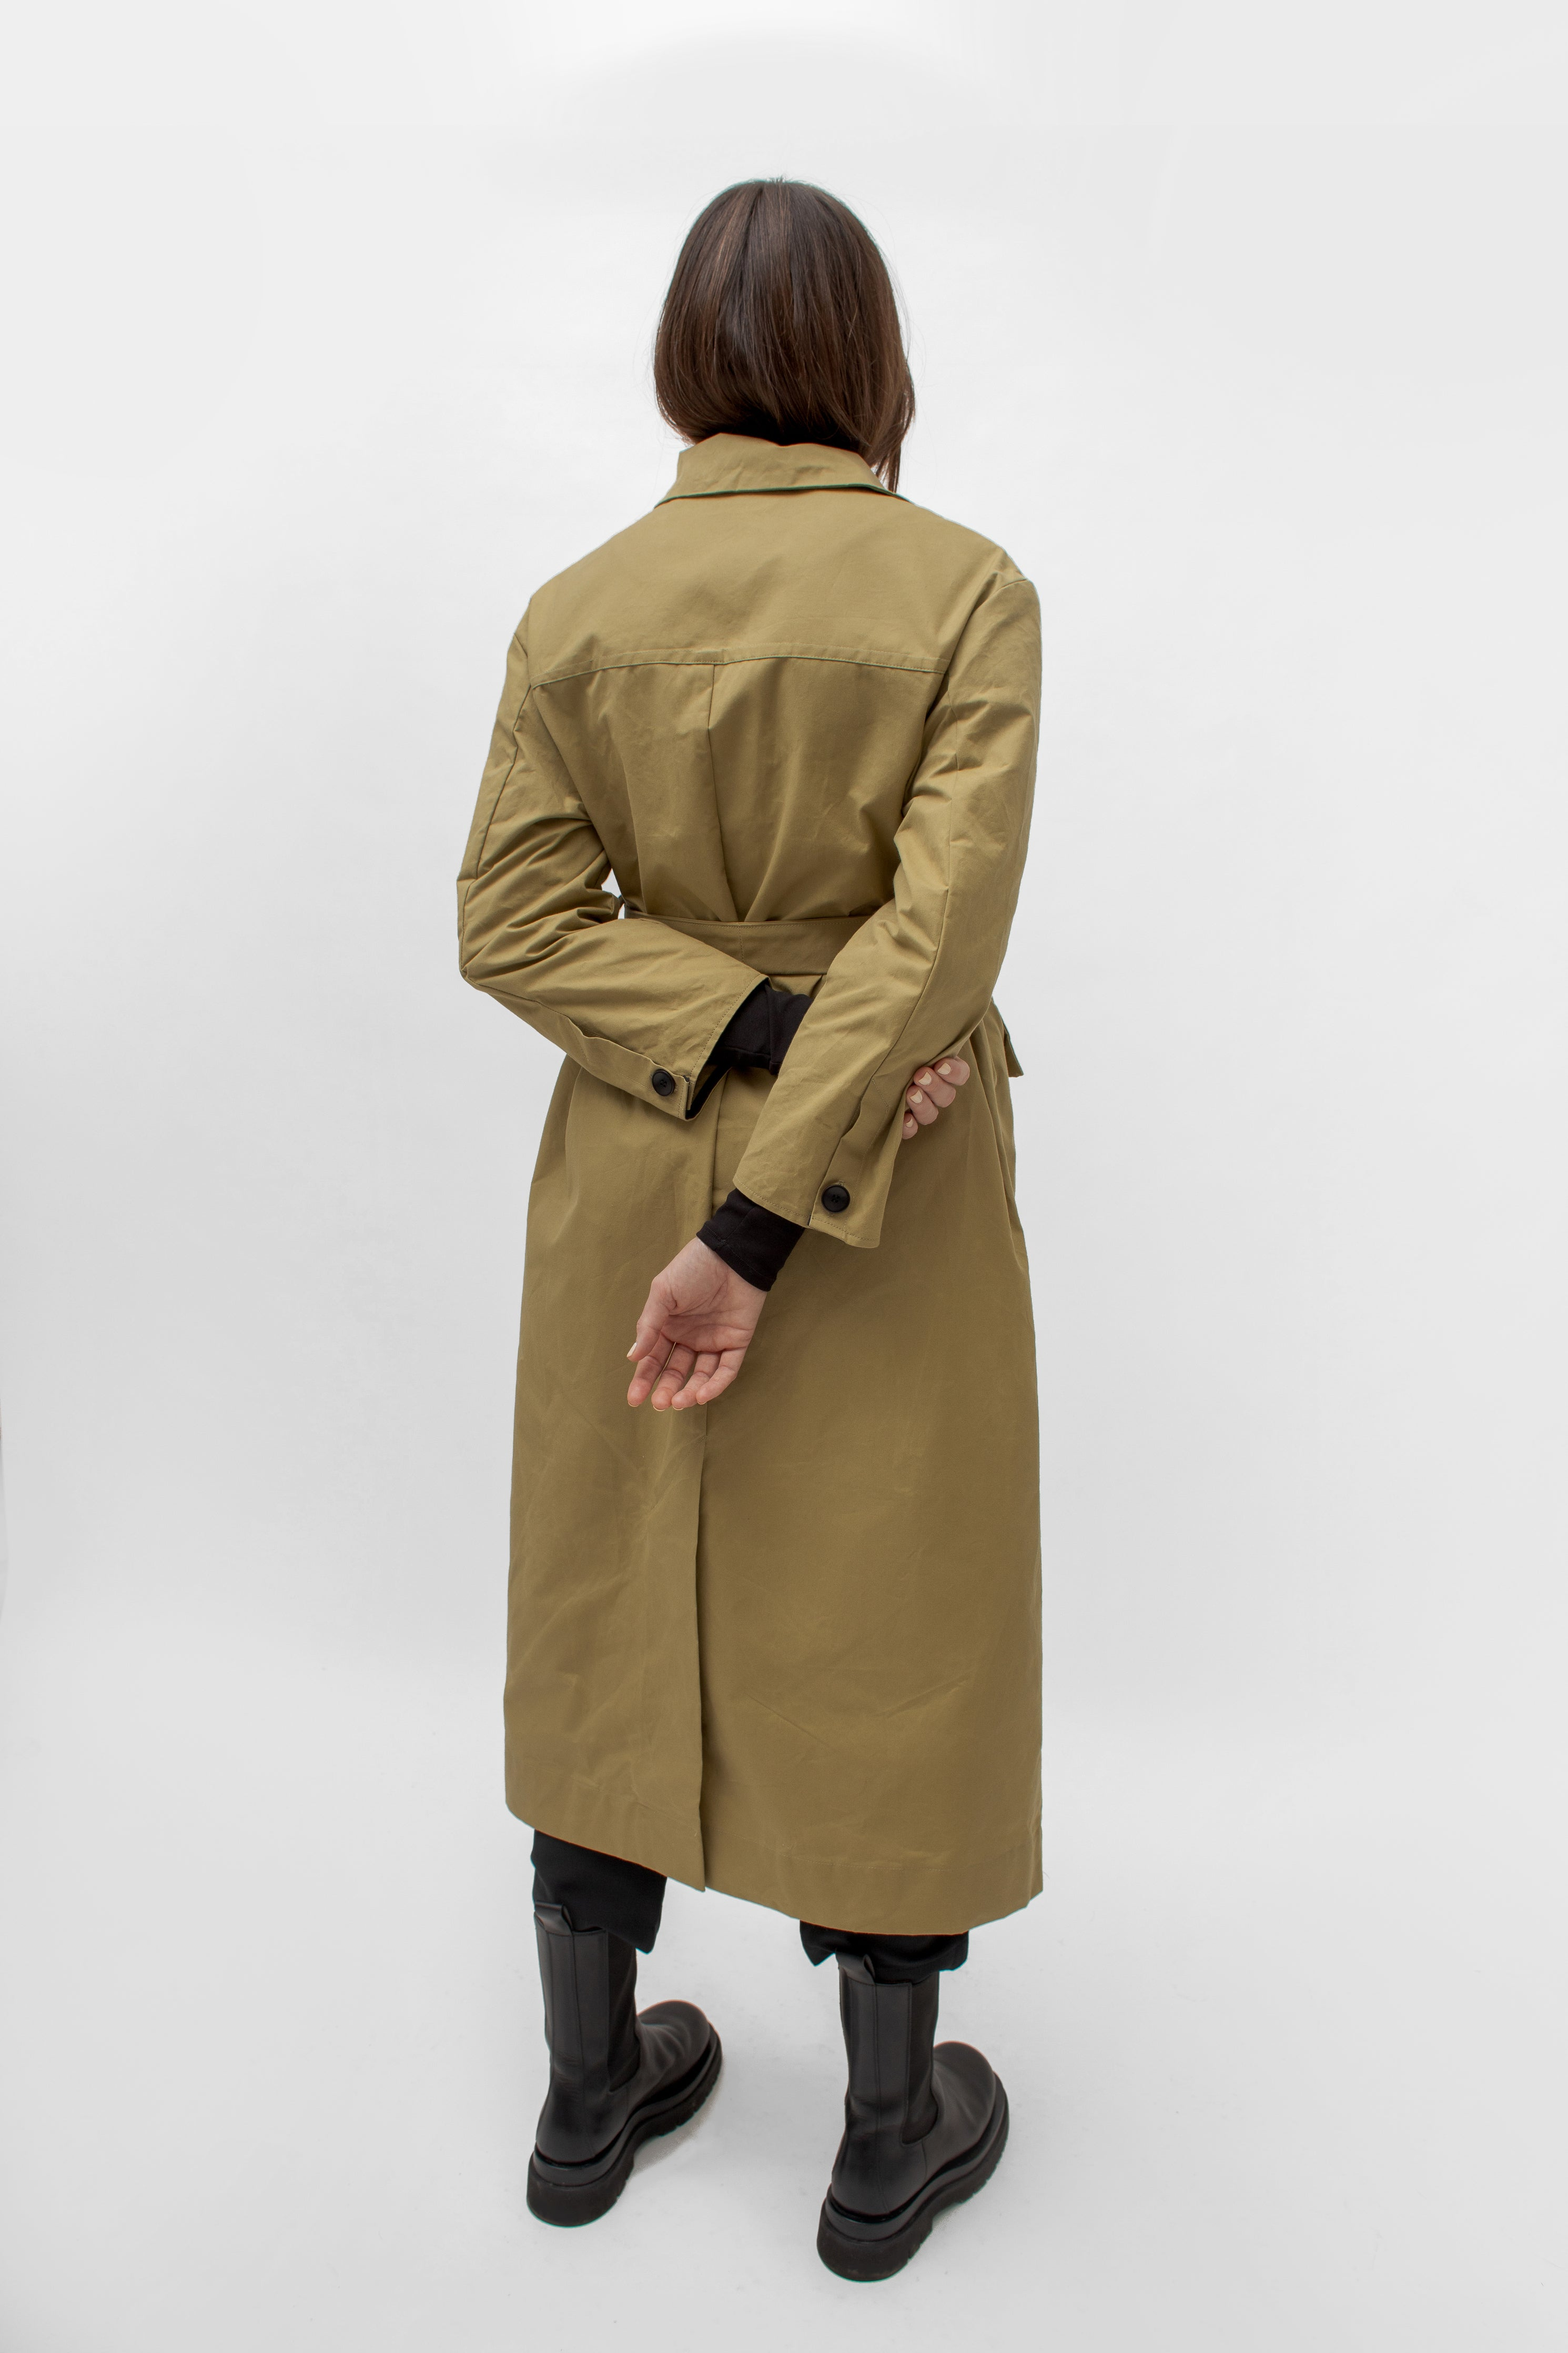 The Long Commuter Jacket #2